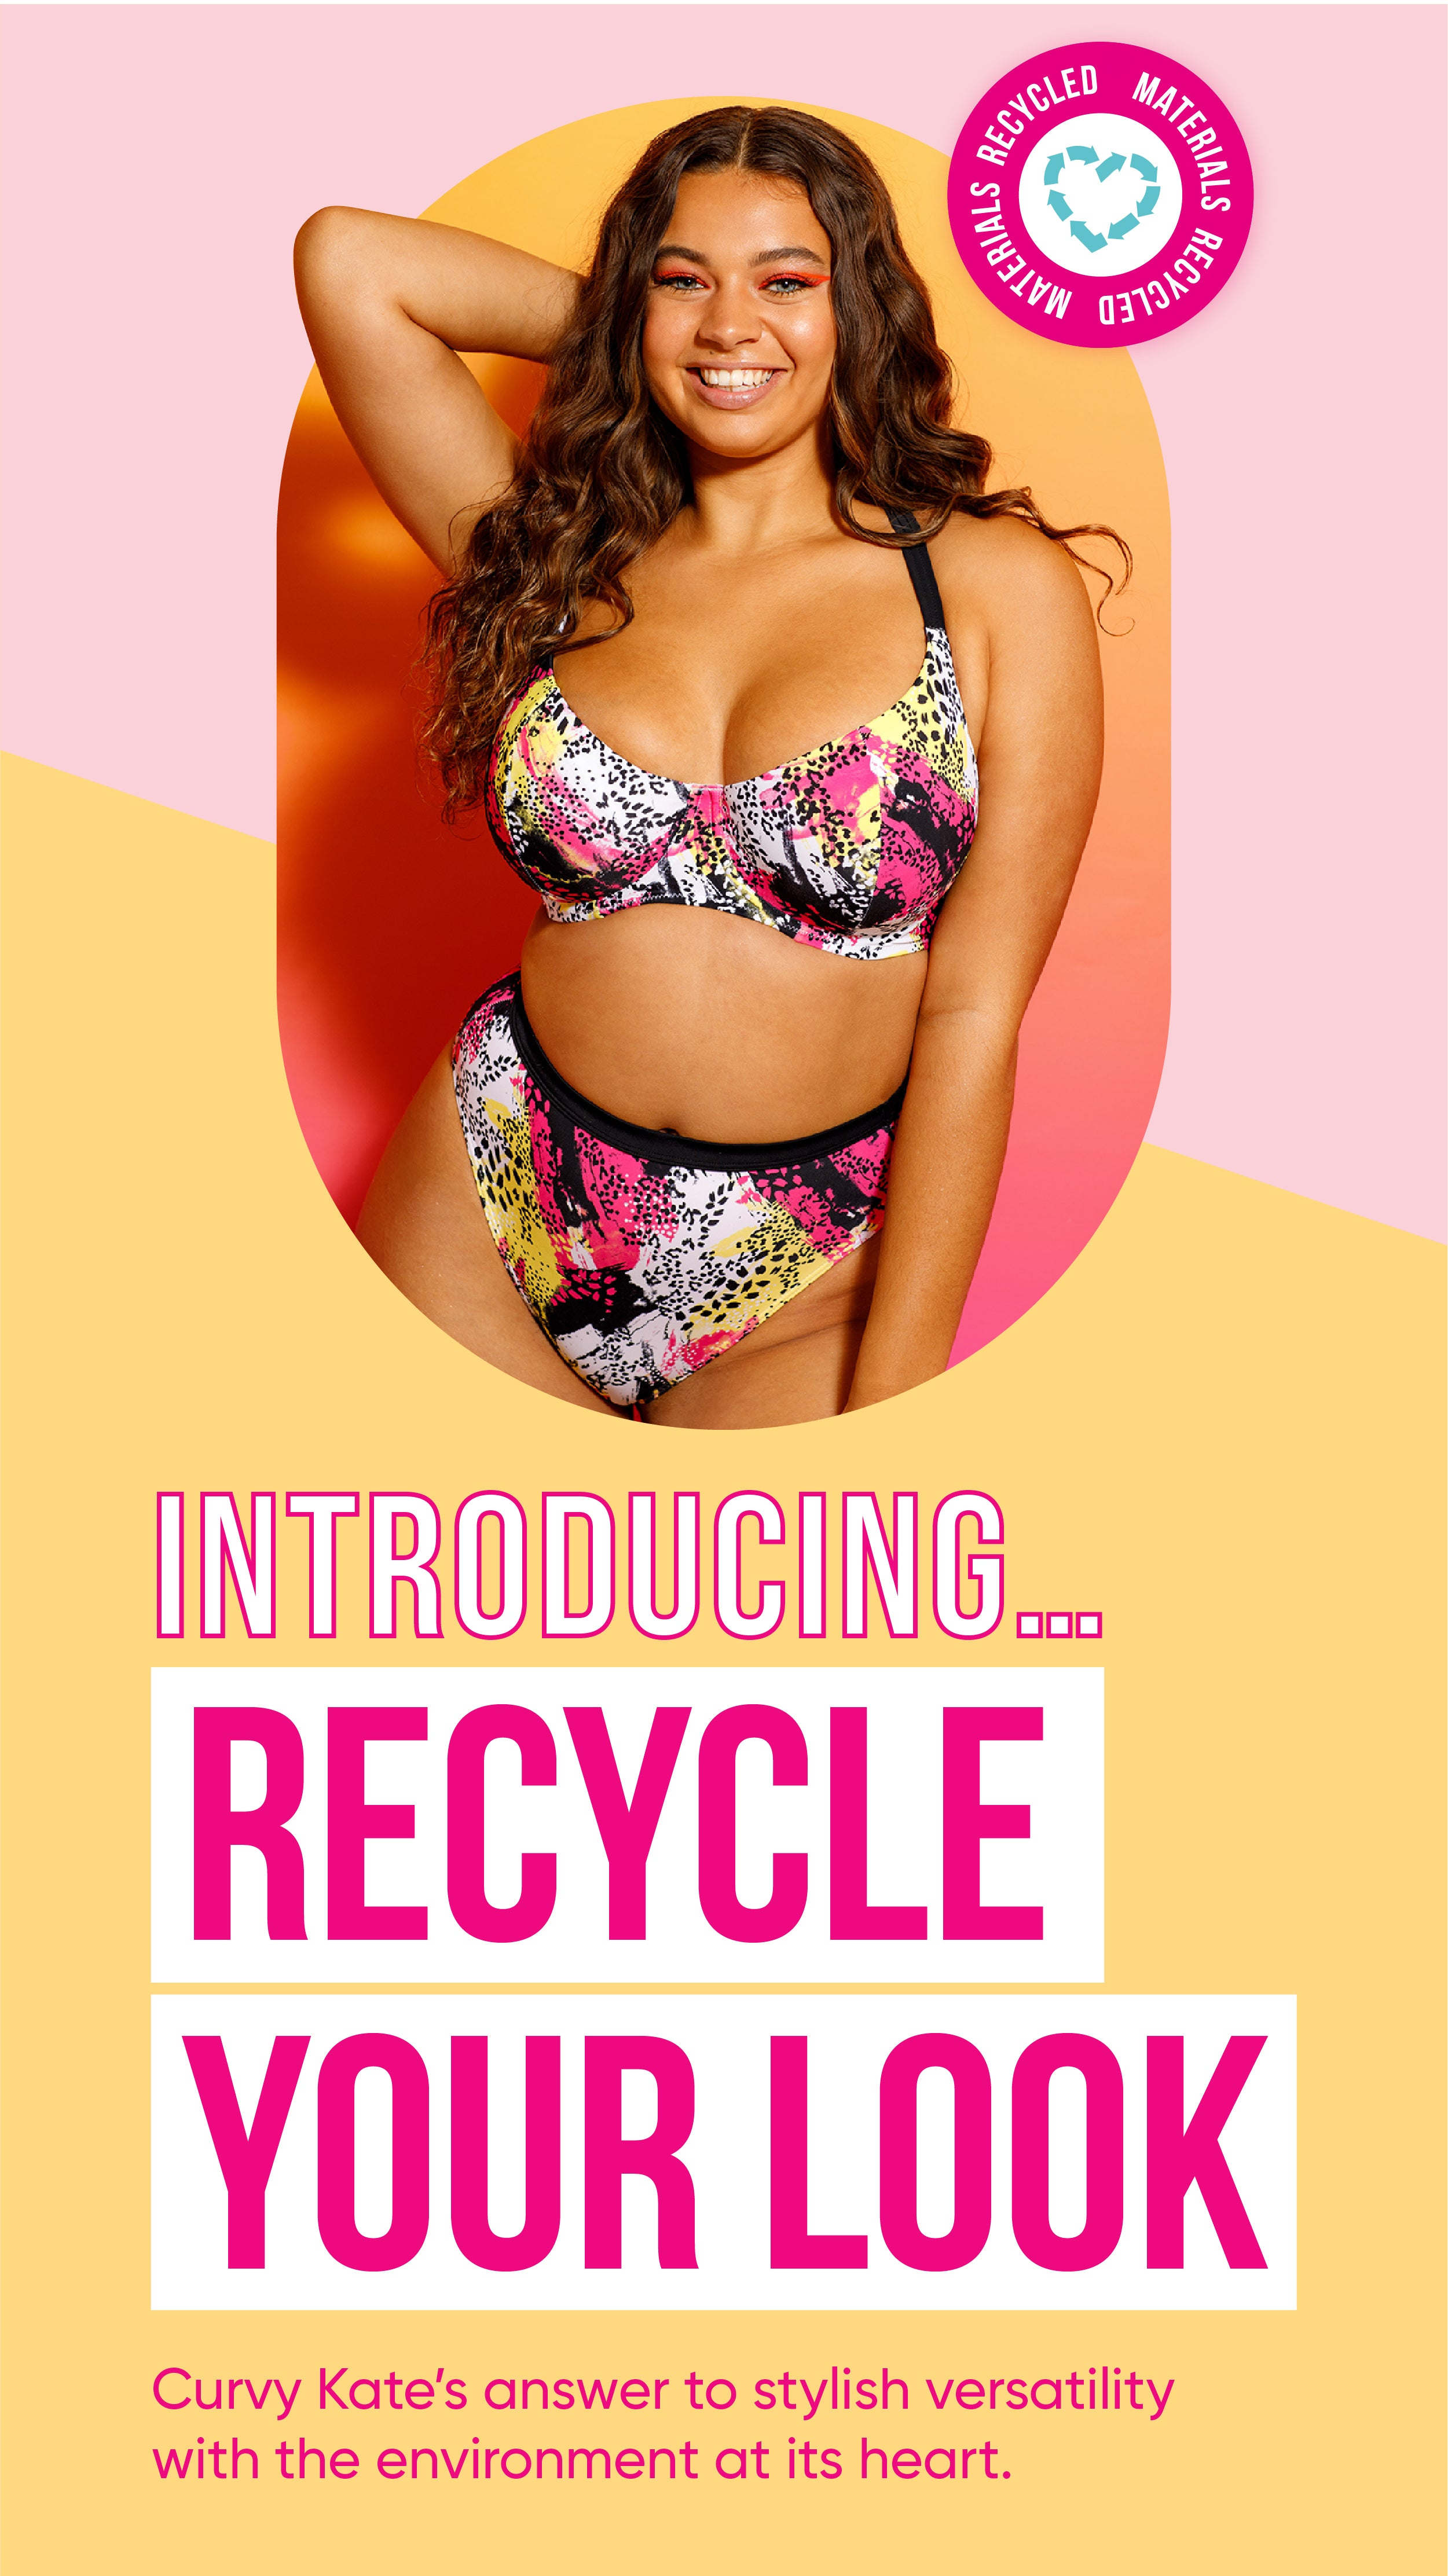 Recycle your look